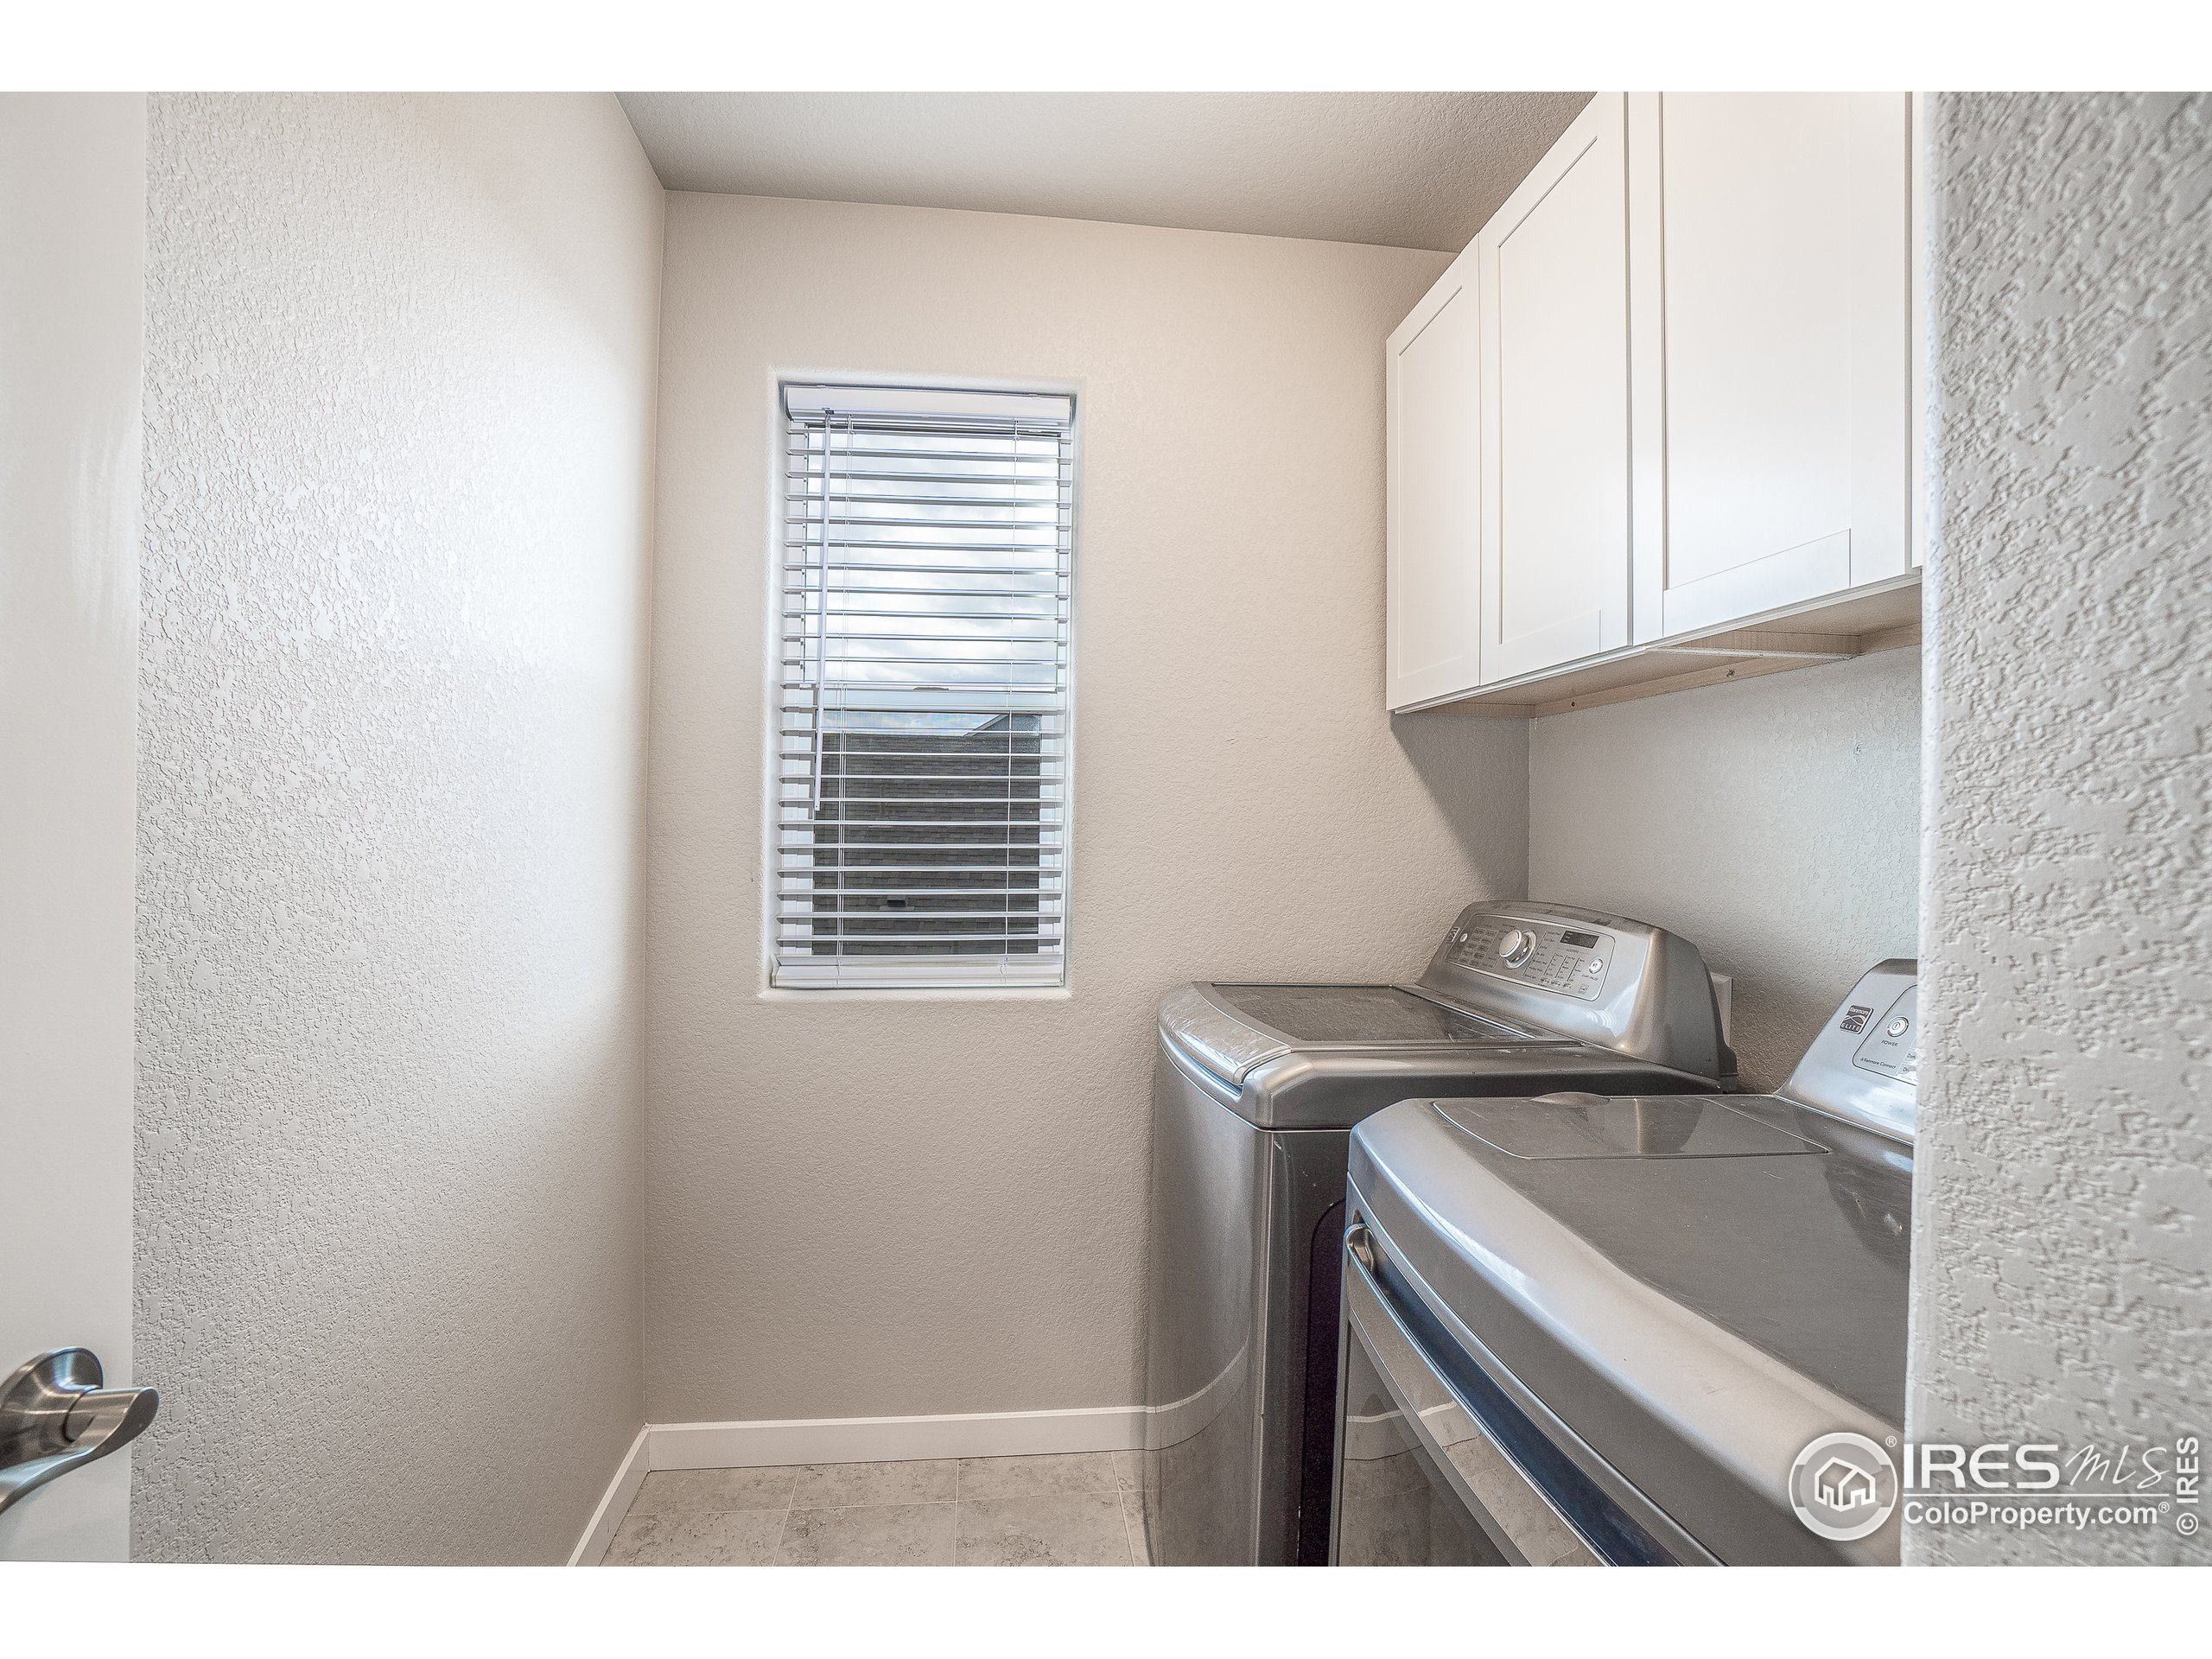 Laundry room with cabinets for storage